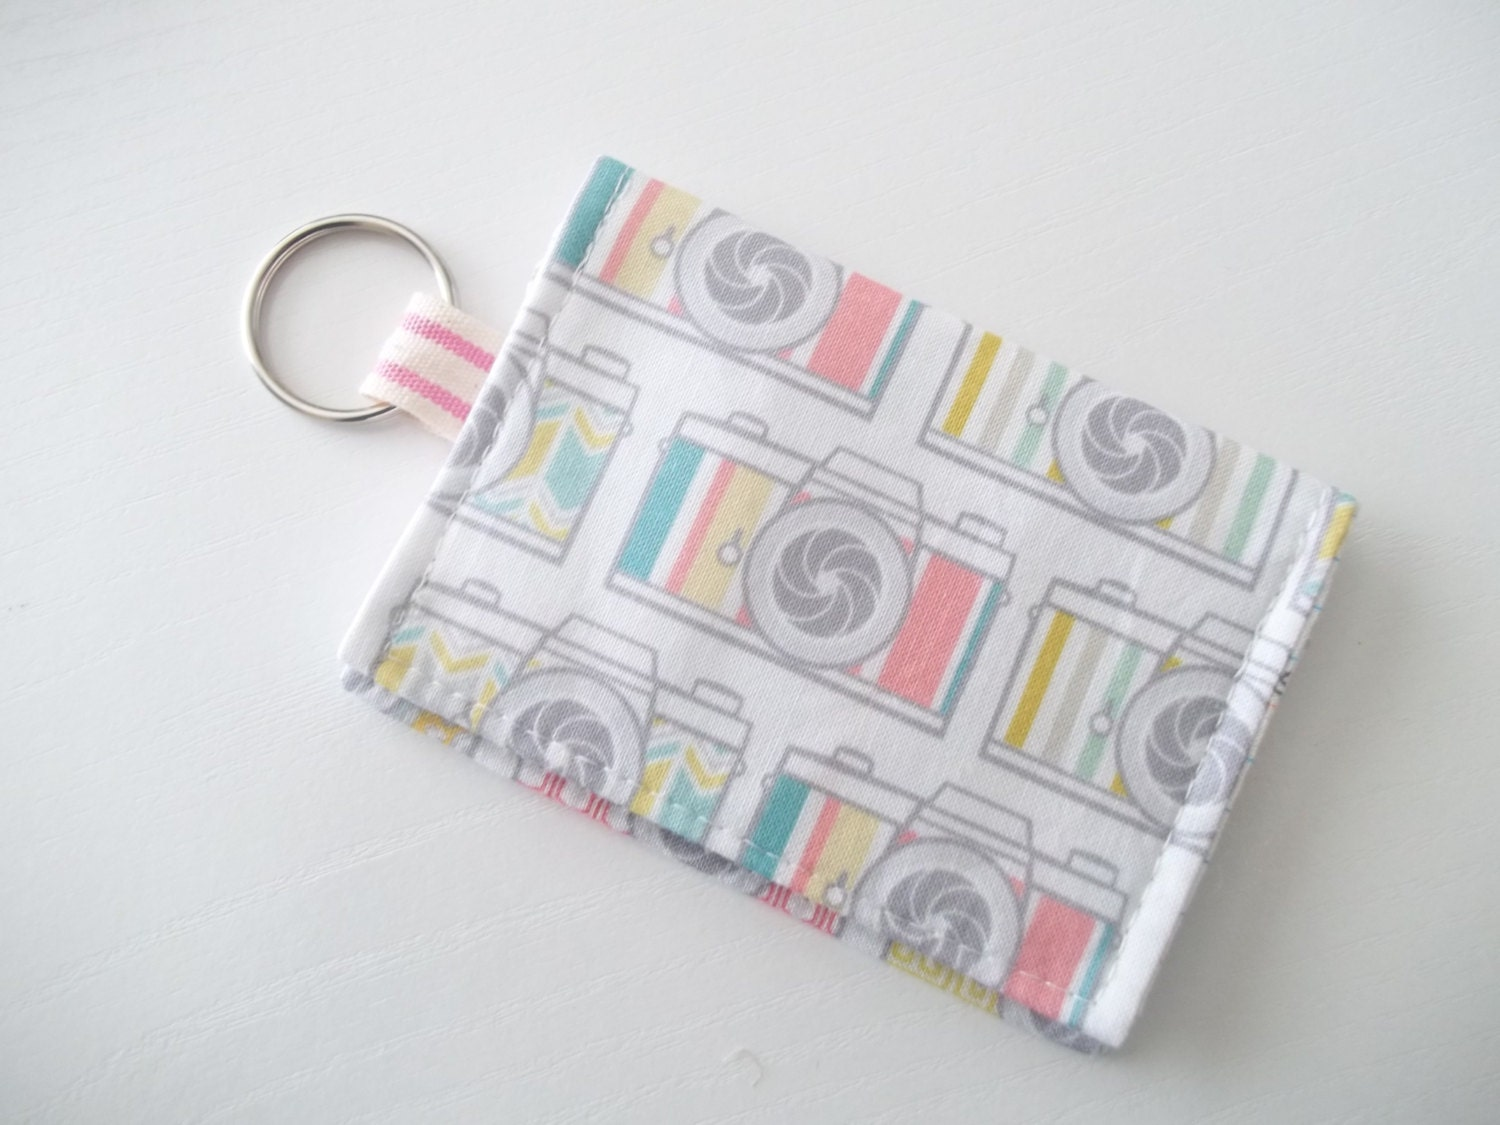 Camera keychain wallet cute business card holder for Keychain business cards